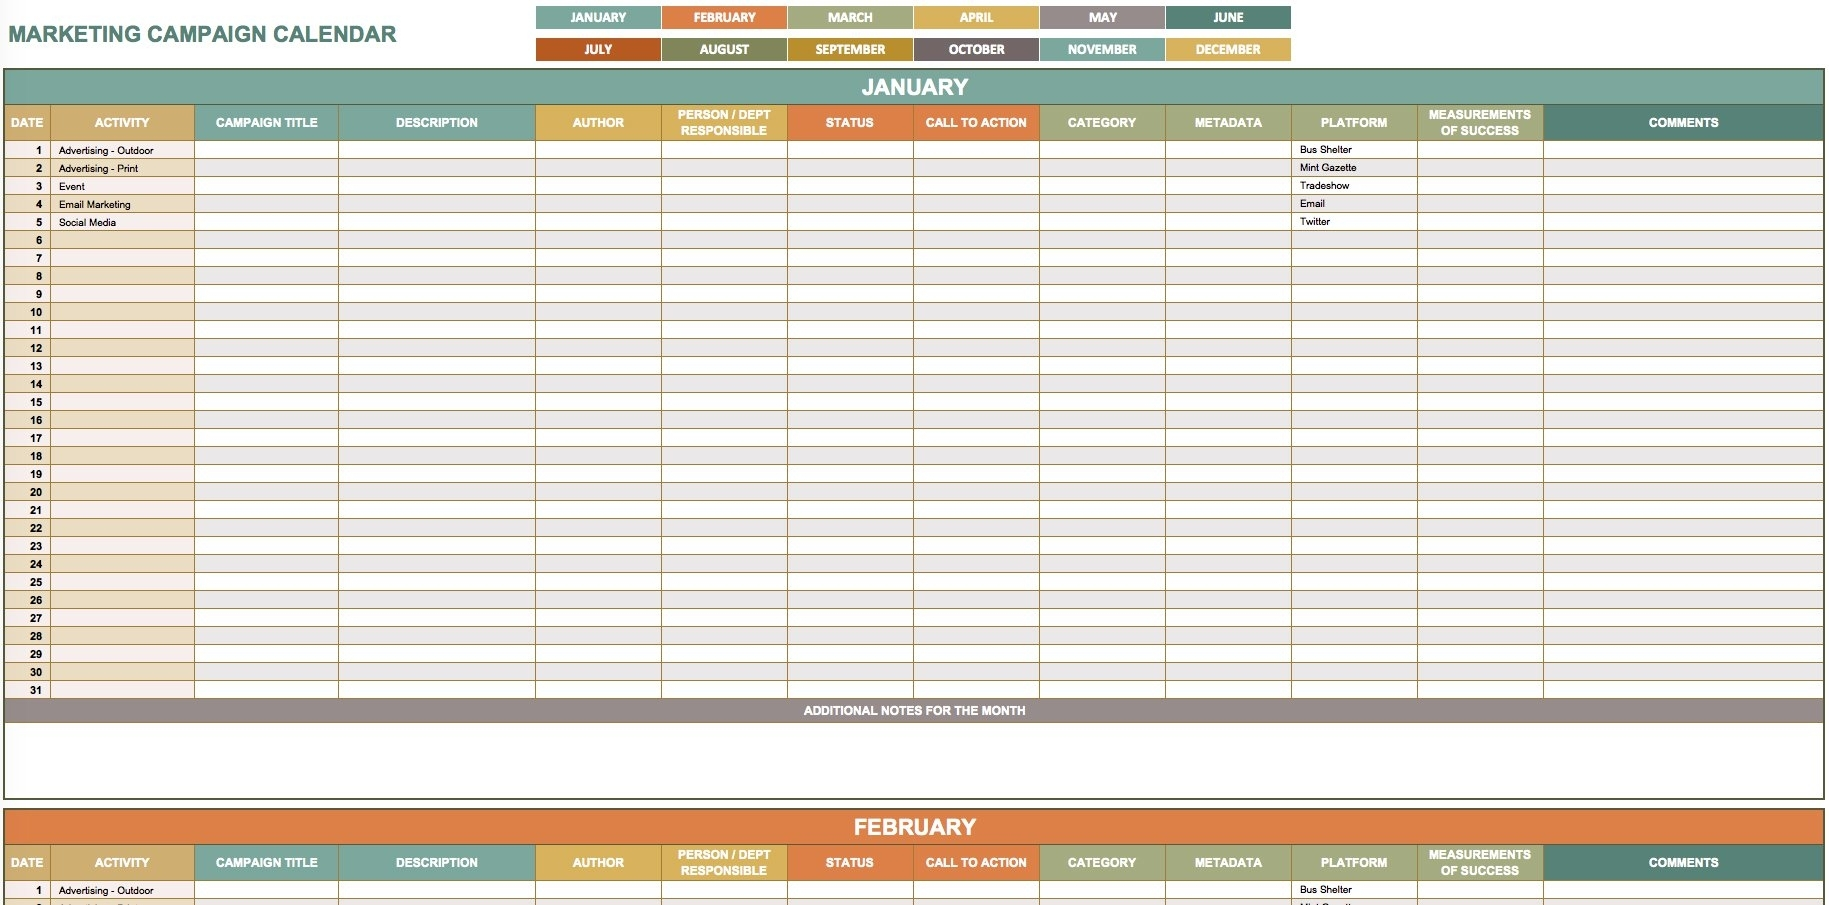 9 Free Marketing Calendar Templates For Excel - Smartsheet inside Samples Of Monthly Activity Calendar Templates And Designs